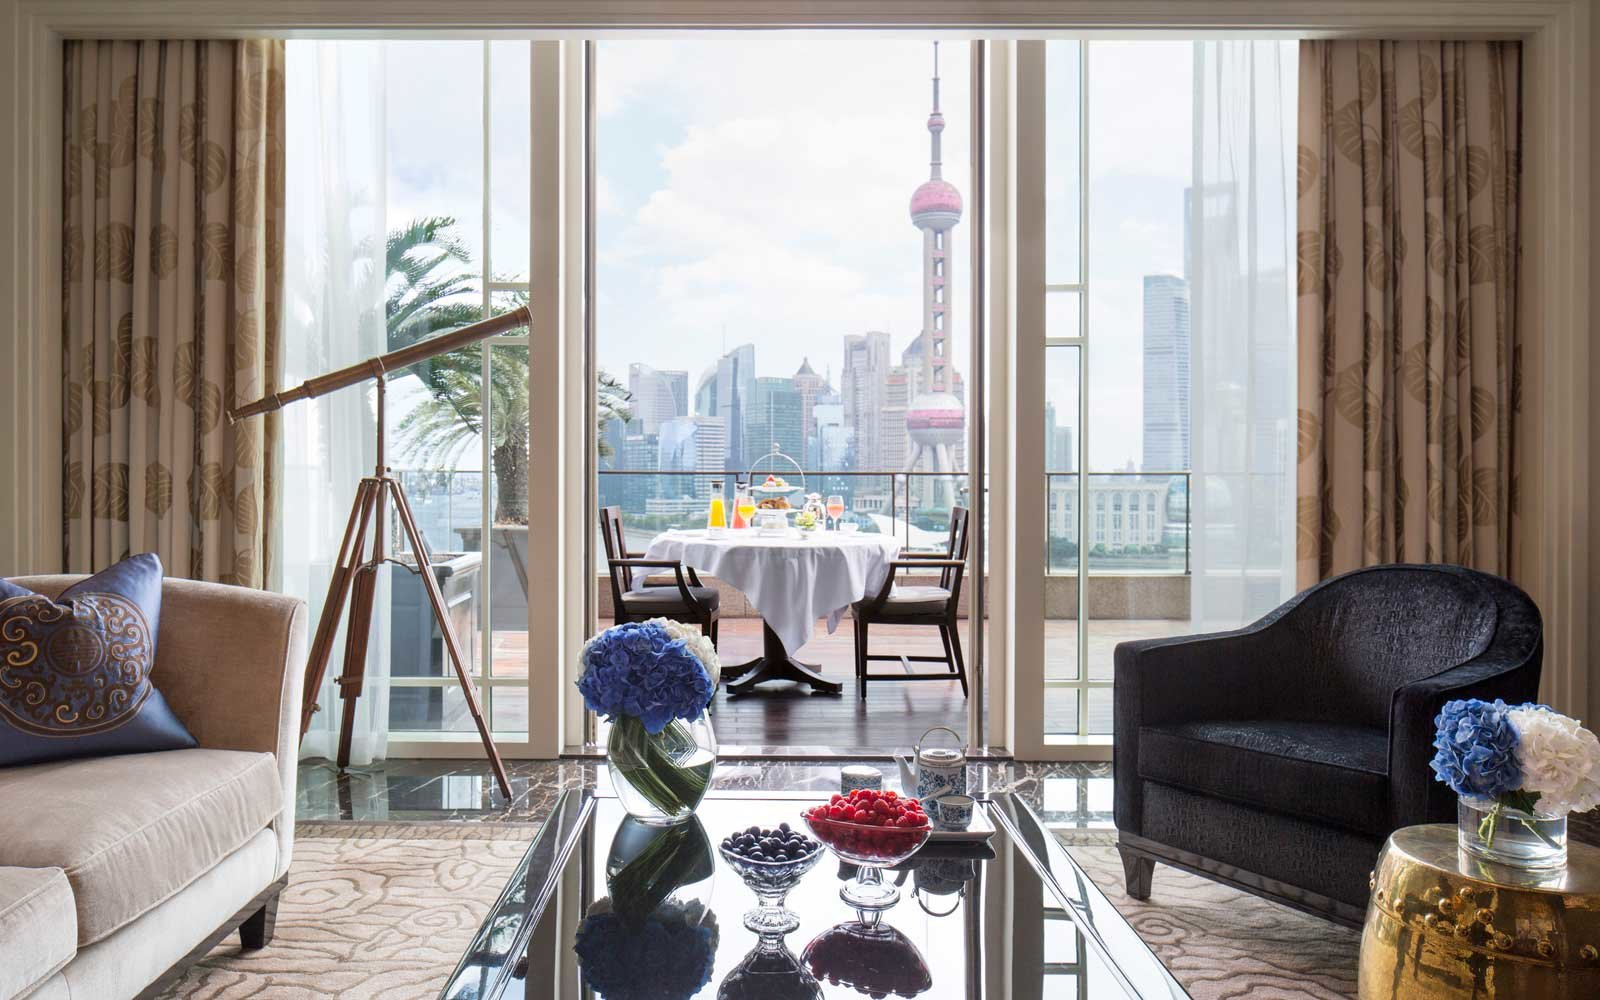 Best Hotels in Shanghai according to Travel + Leisure (pictured: The Peninsula Shanghai)